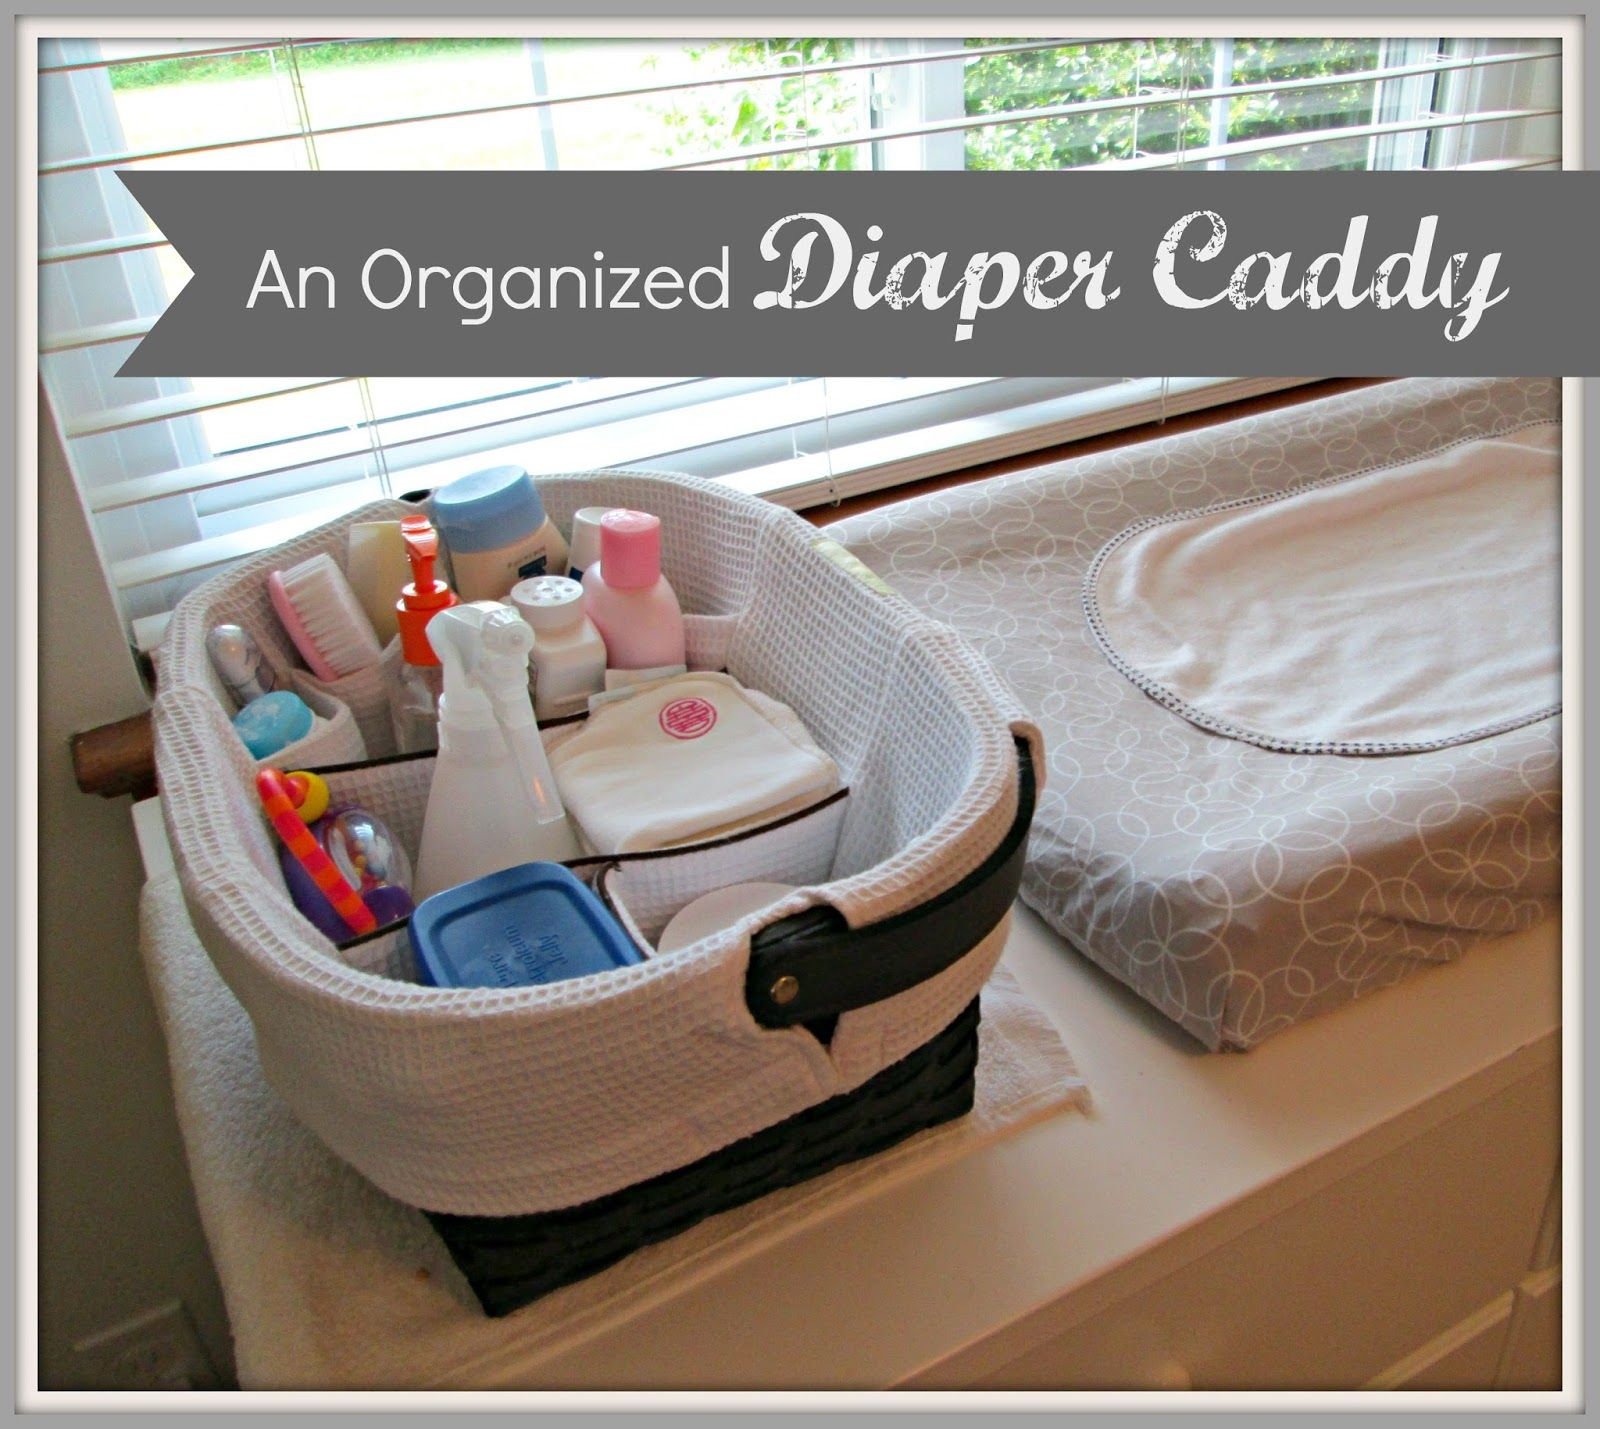 15 Oh So Creative Nursery Organizing Ideas Making The Baby Room Look Even More Beautiful In 2020 Diaper Caddy Baby Nursery Organization Baby Changing Station